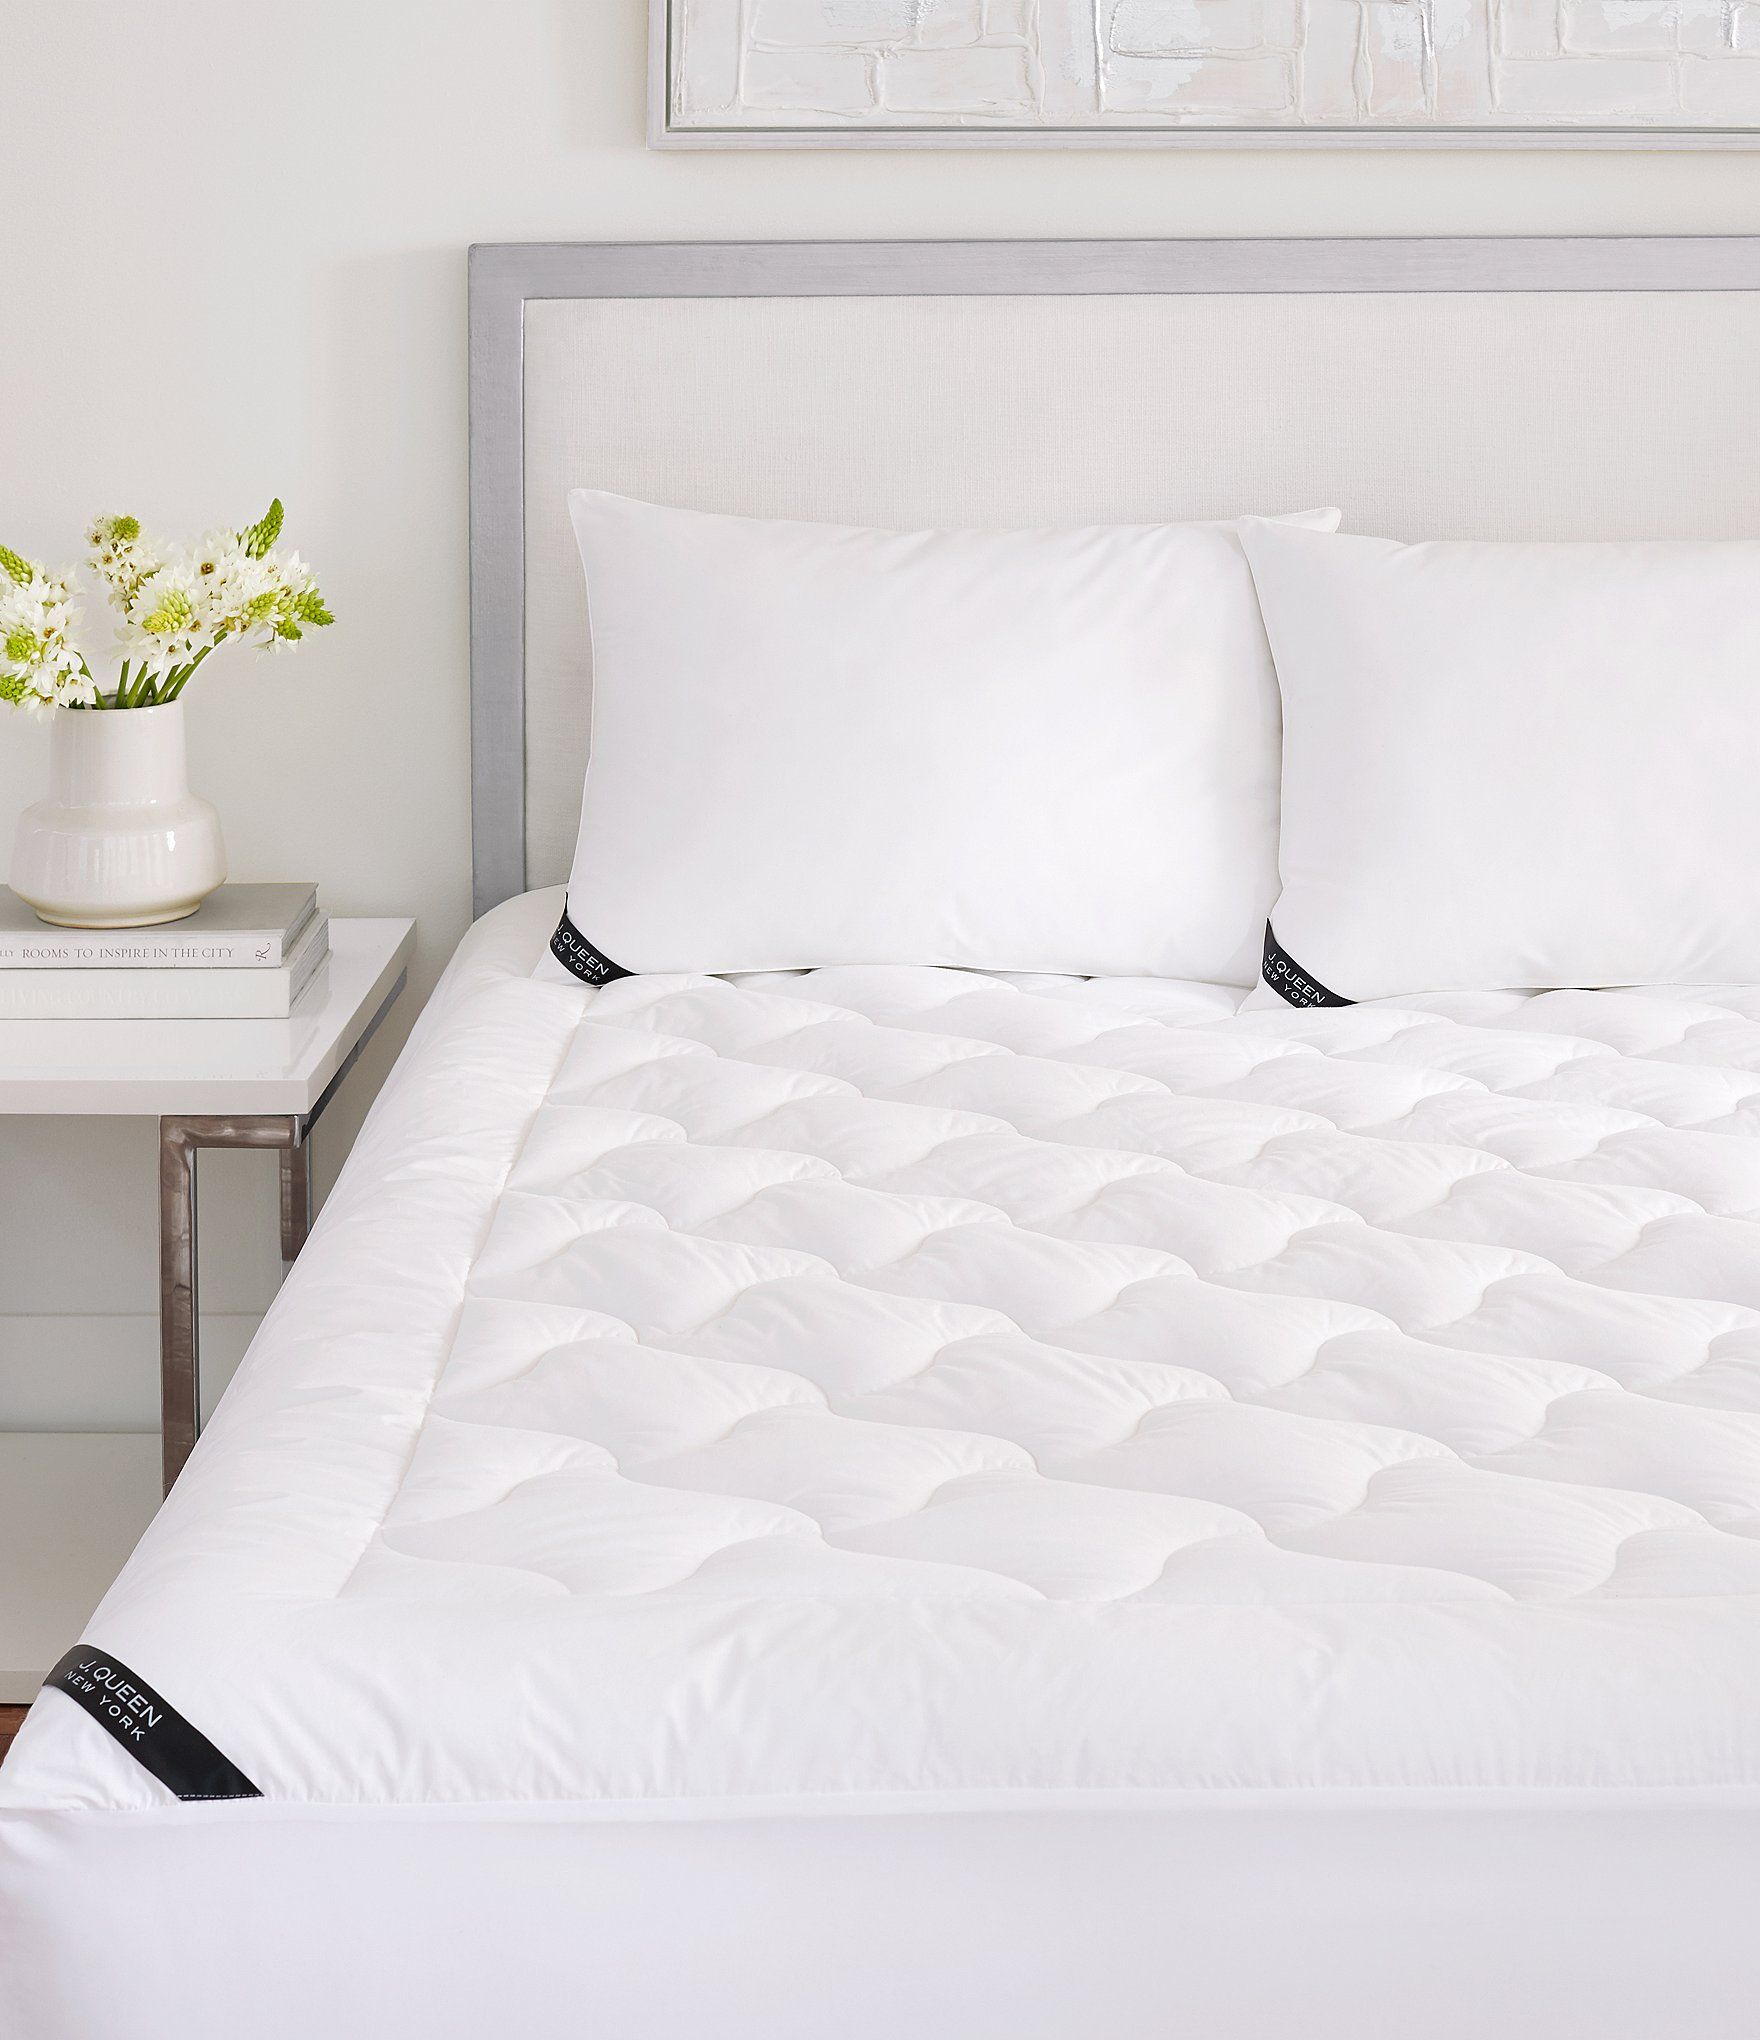 Never Deep Cleaned Your Mattress Now Is The Time In 2020 Linen Bedding Bed Linen Sets Mattress Cleaning